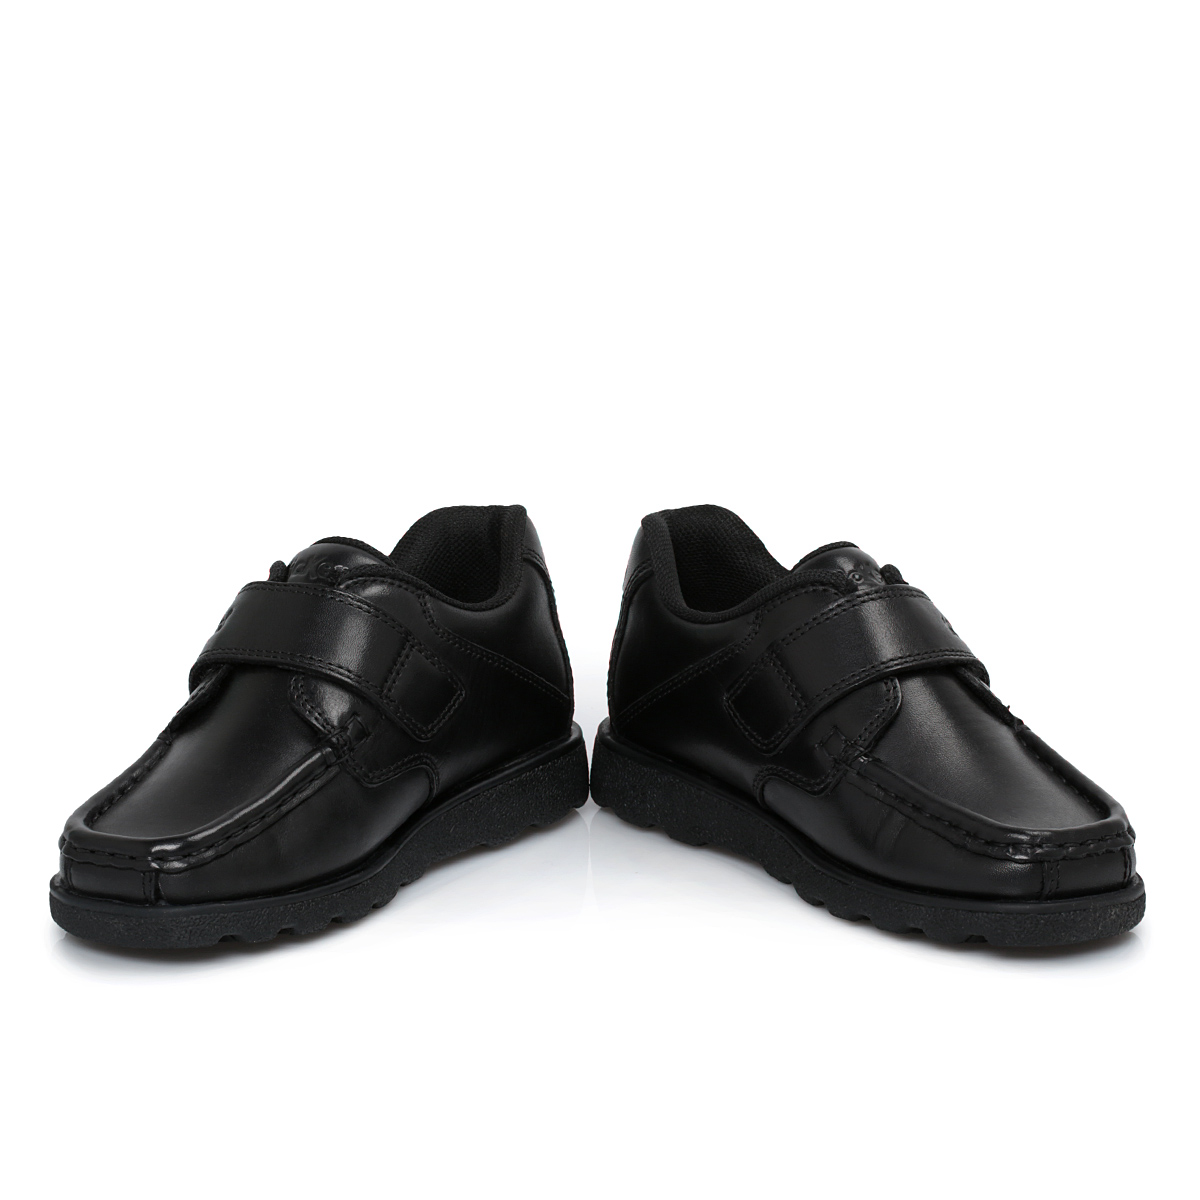 Infant Black Shoes Size